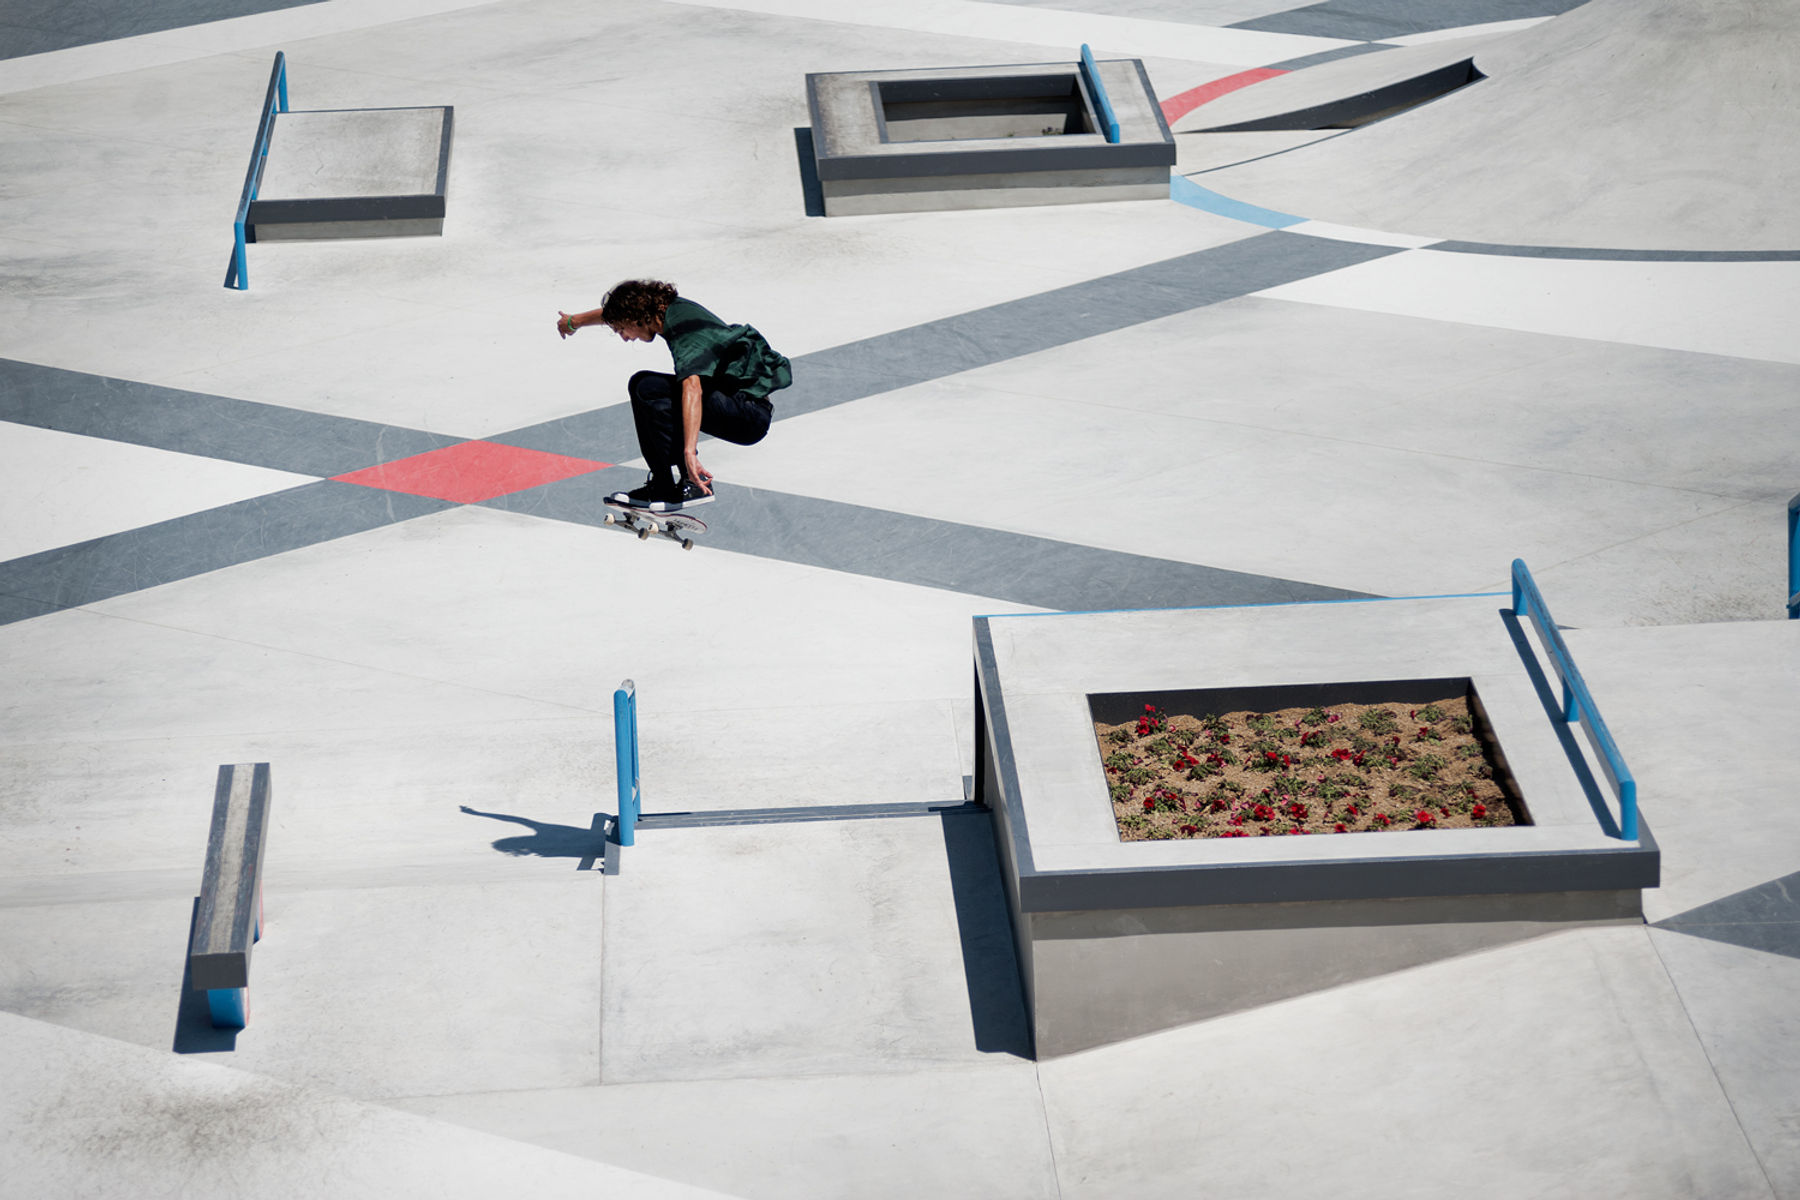 EVAN_SMITH_KICKFLIP_02_GREY_HENRY_KINGSFORD